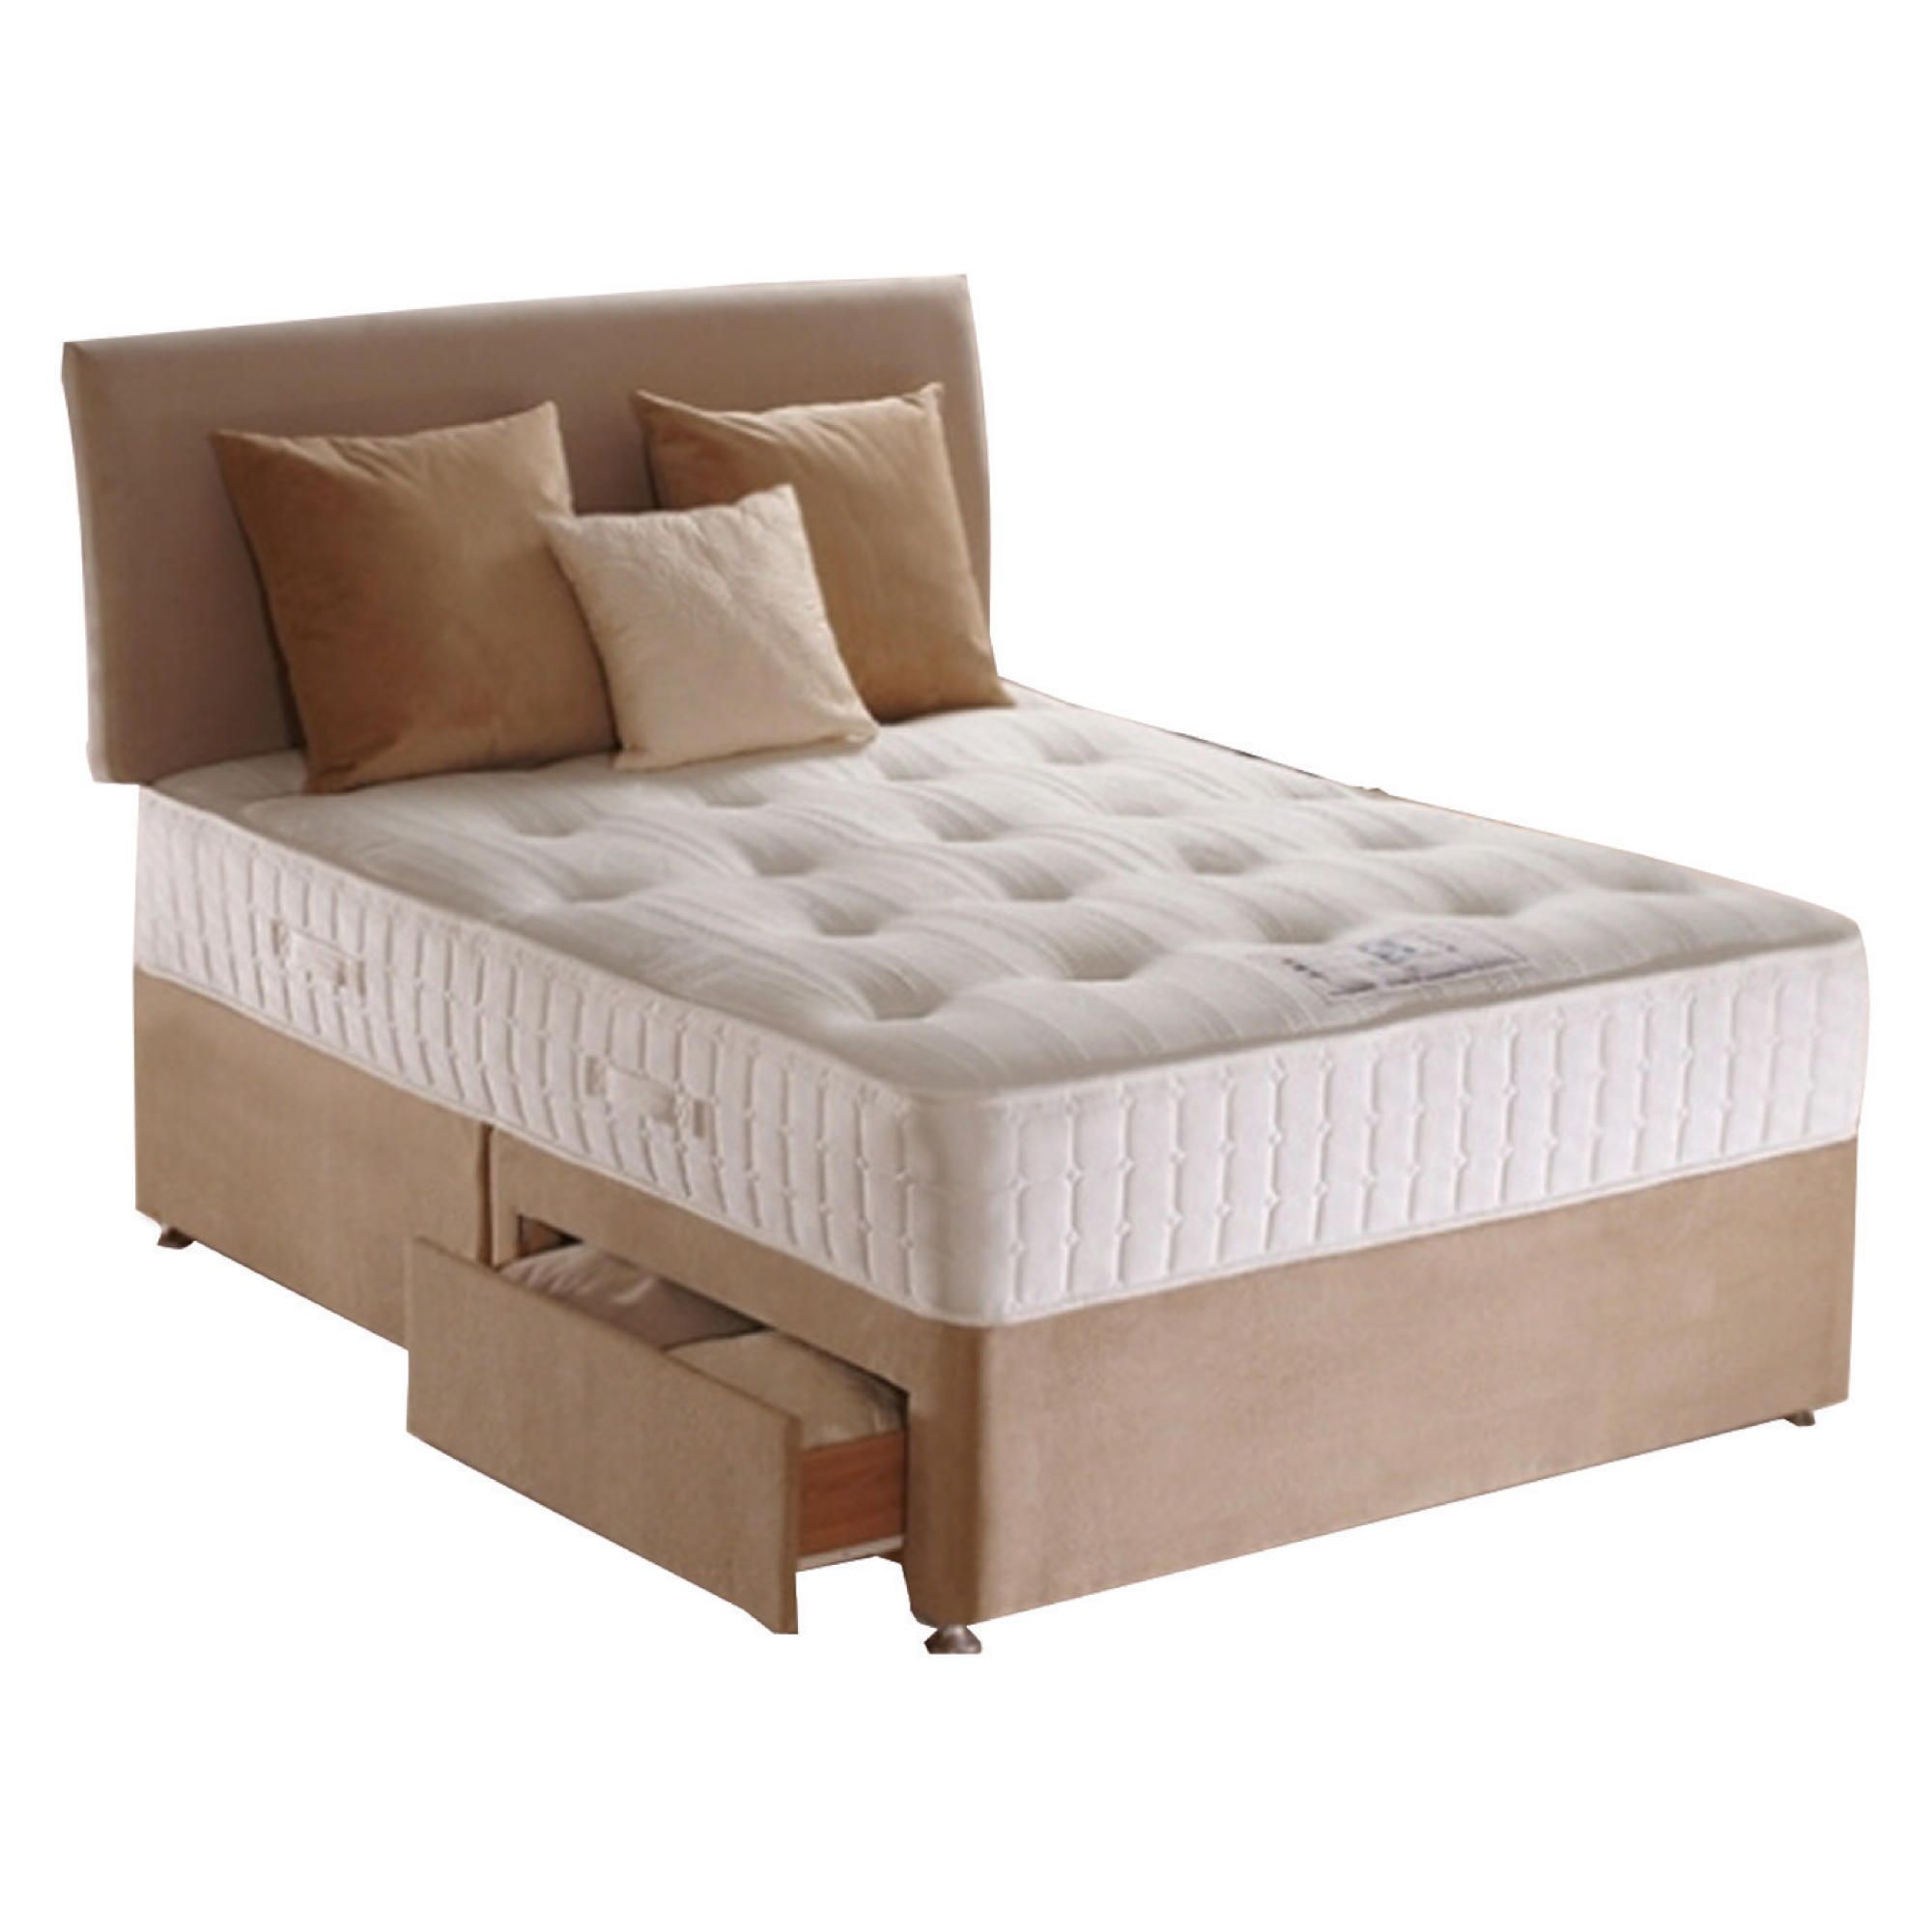 Sealy Purity Pocket Ortho Double 2 Drawer Divan Bed at Tesco Direct